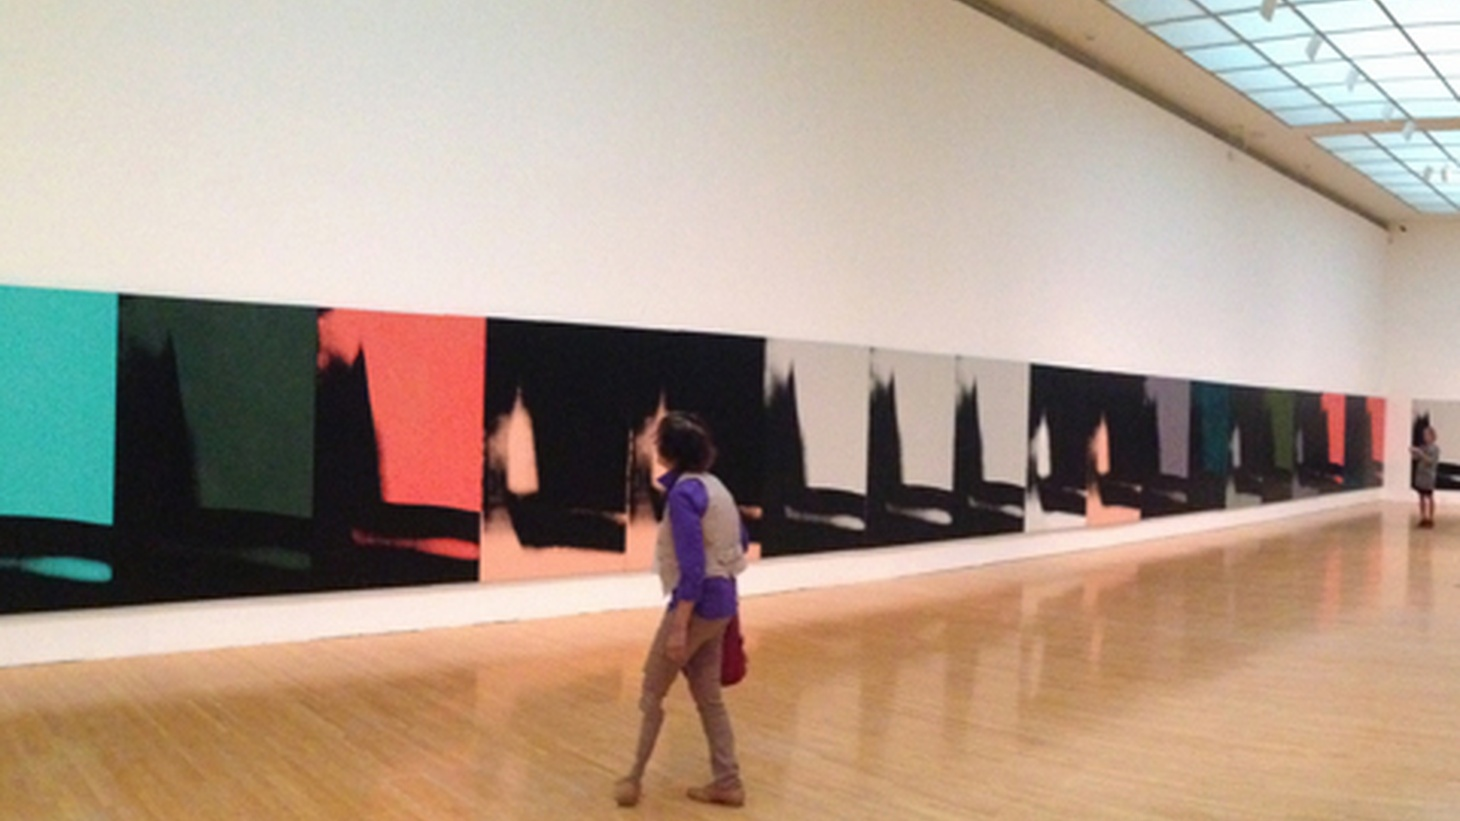 Edward raves about the current Warhol exhibition at MOCA, Shadows.